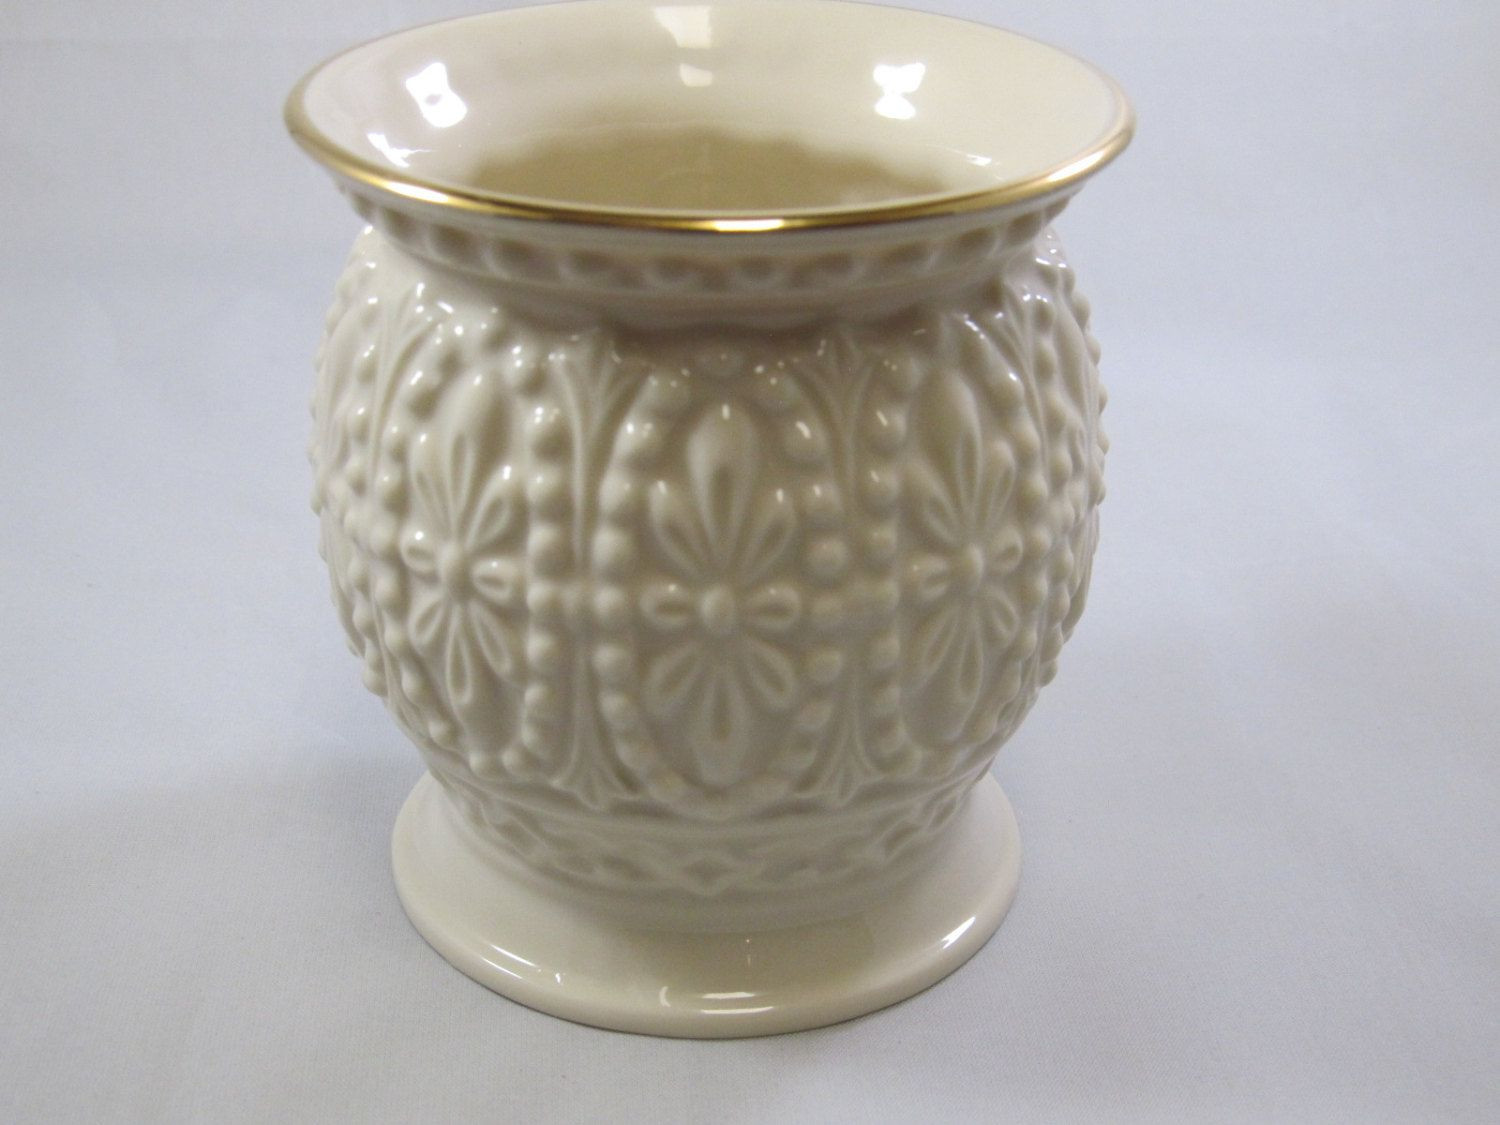 Fine China Vase Of Lenox Ivory Porcelain Vase 24k Gold Trim Bud Vase Fine China Throughout Porcelain